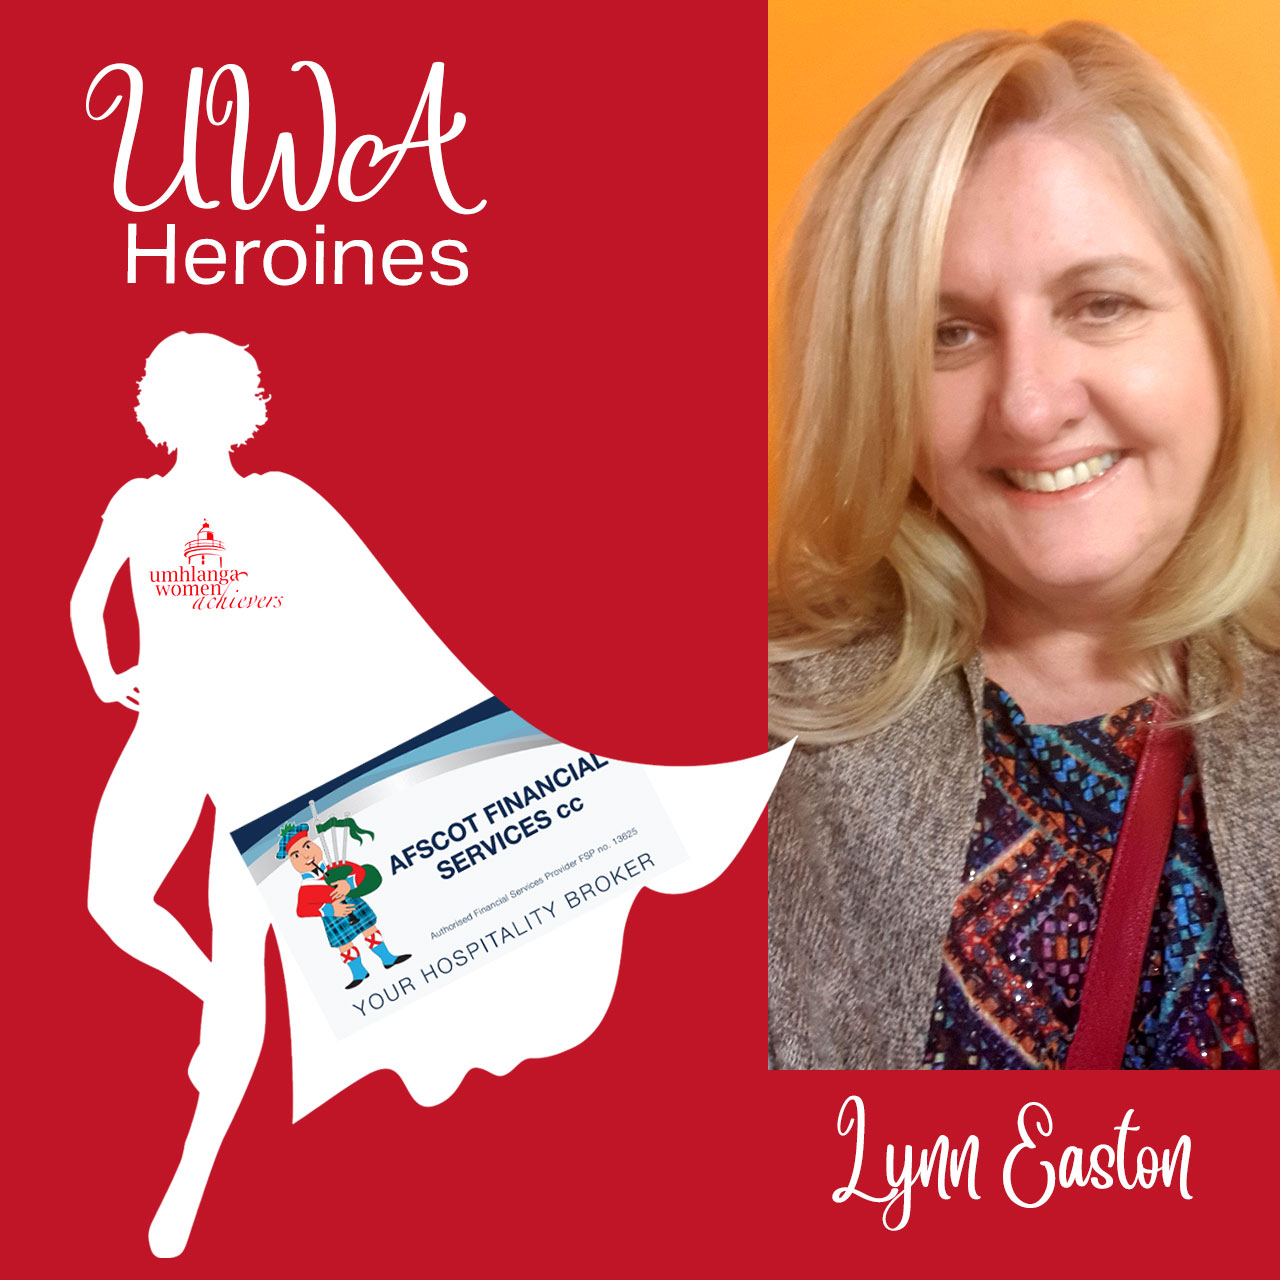 We want to shout out to an exceptional UWA Heroine, well done Lynn Easton from Afscot Financial Services